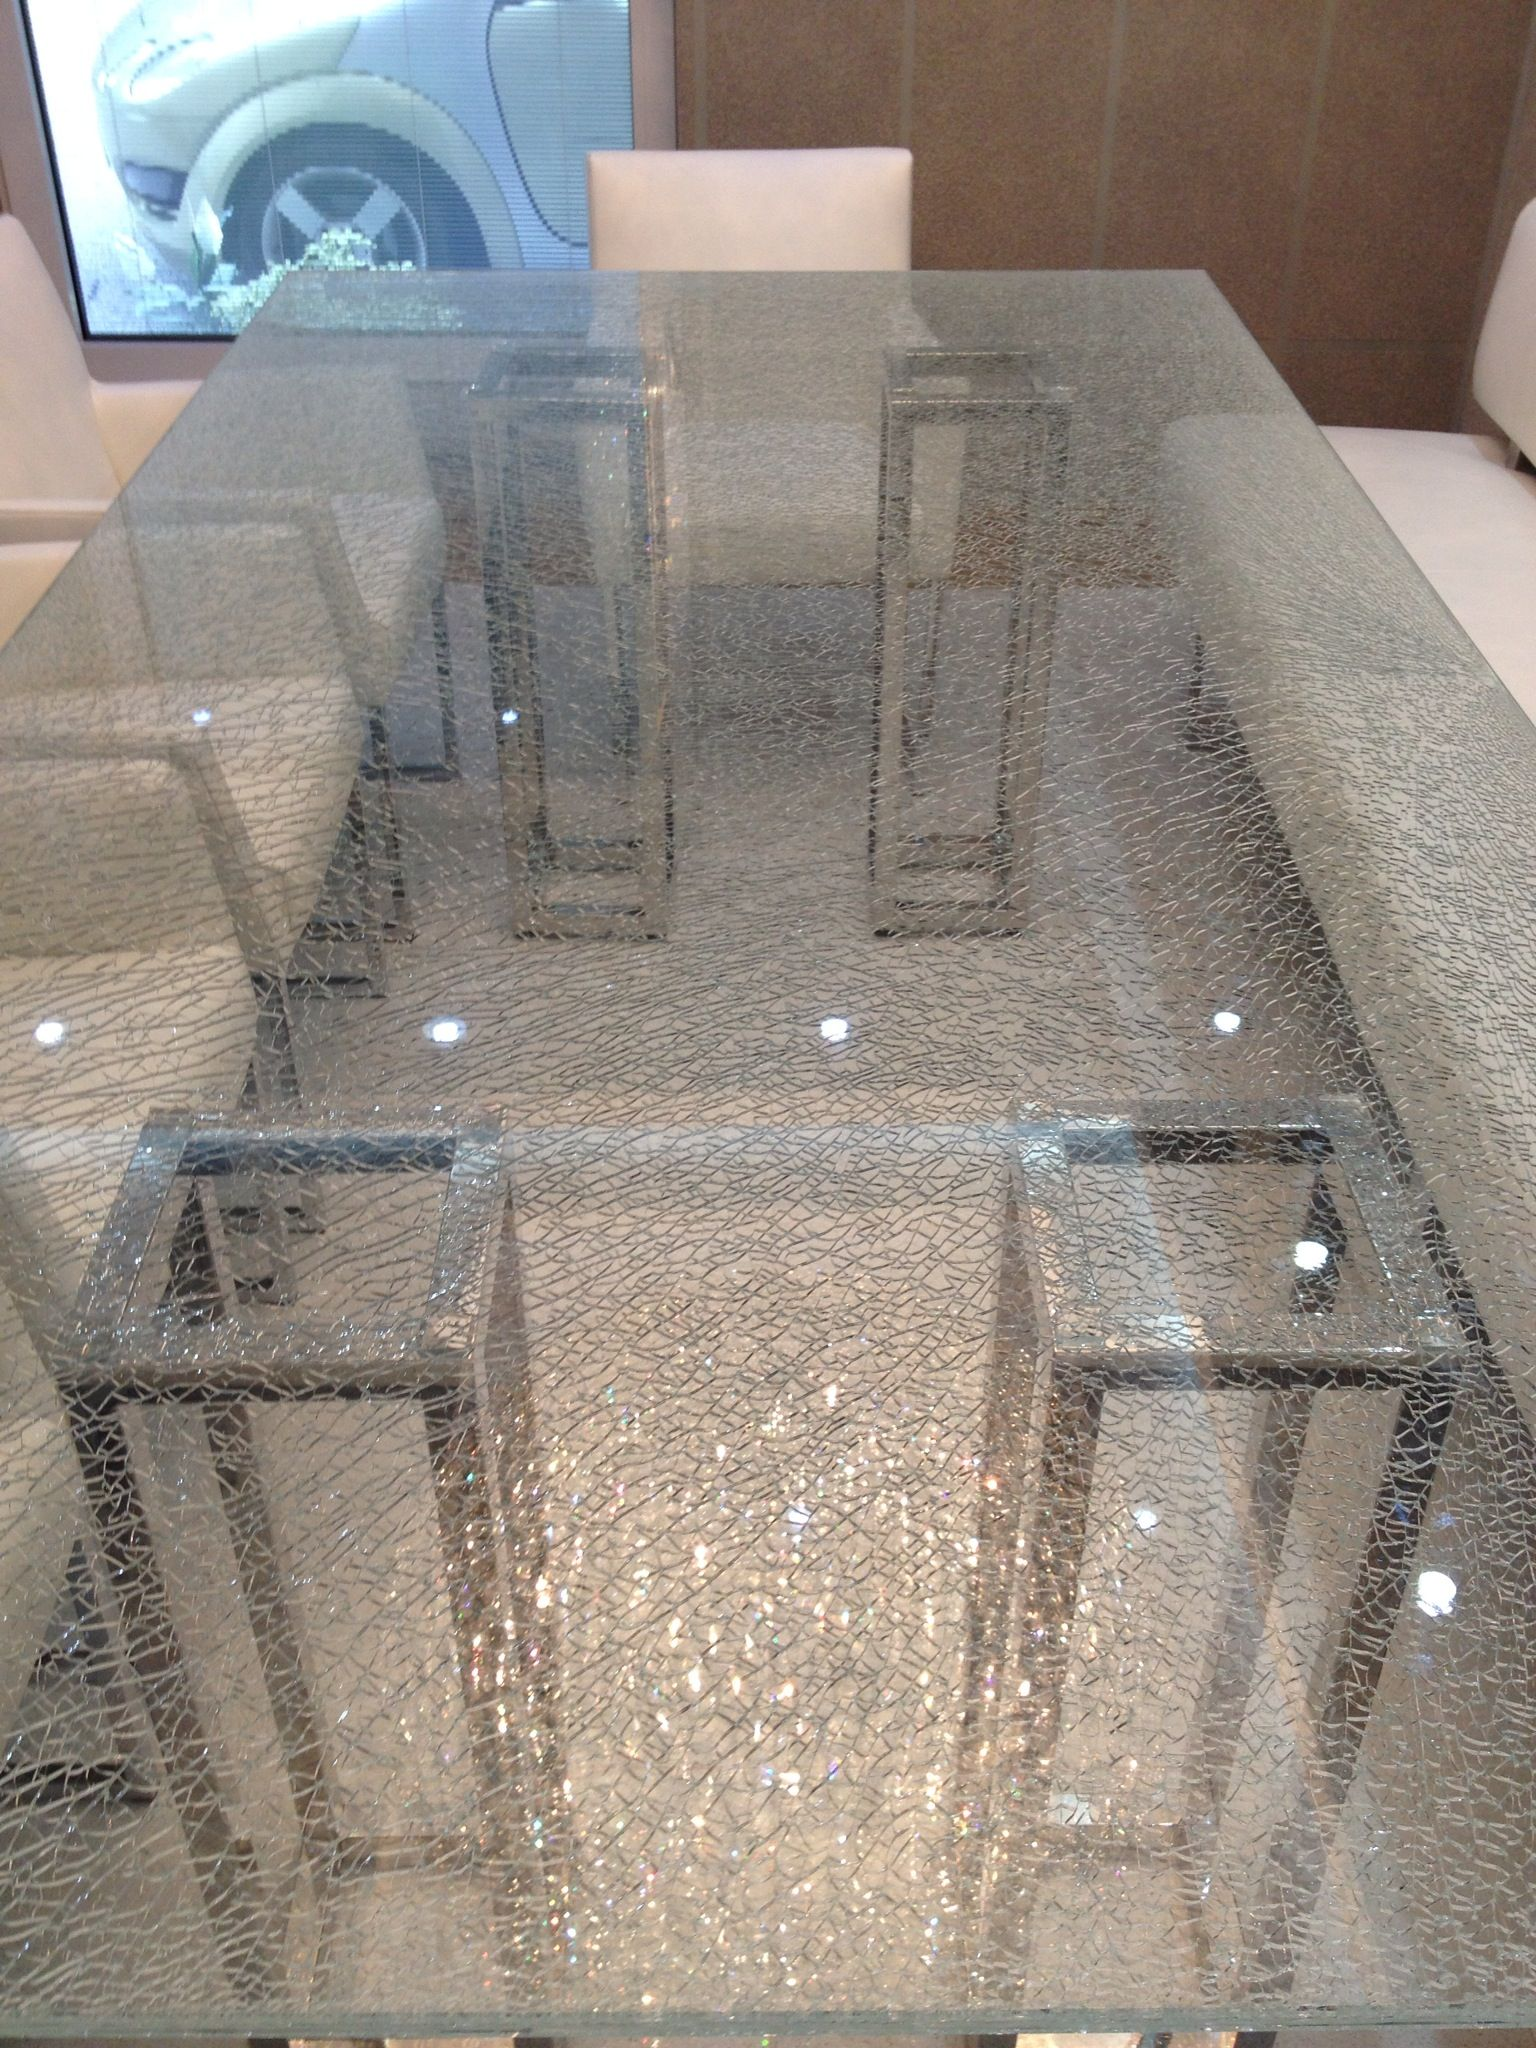 Glass table texture - This Laminated Glass Table Is Finished With A Cracked Ice Texture This Is Achieved By